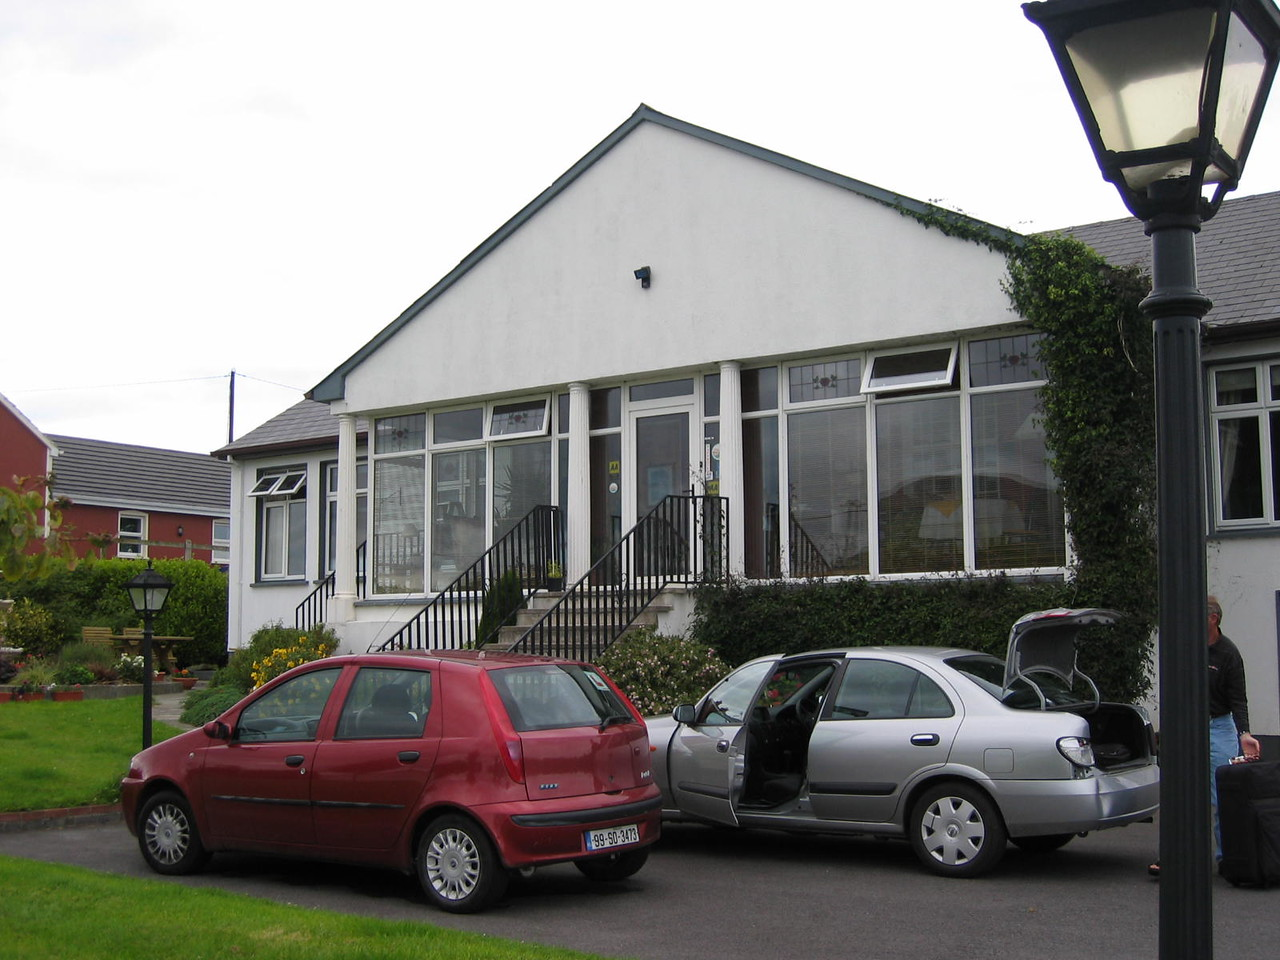 Rowanville Lodge, Grange, County Sligo